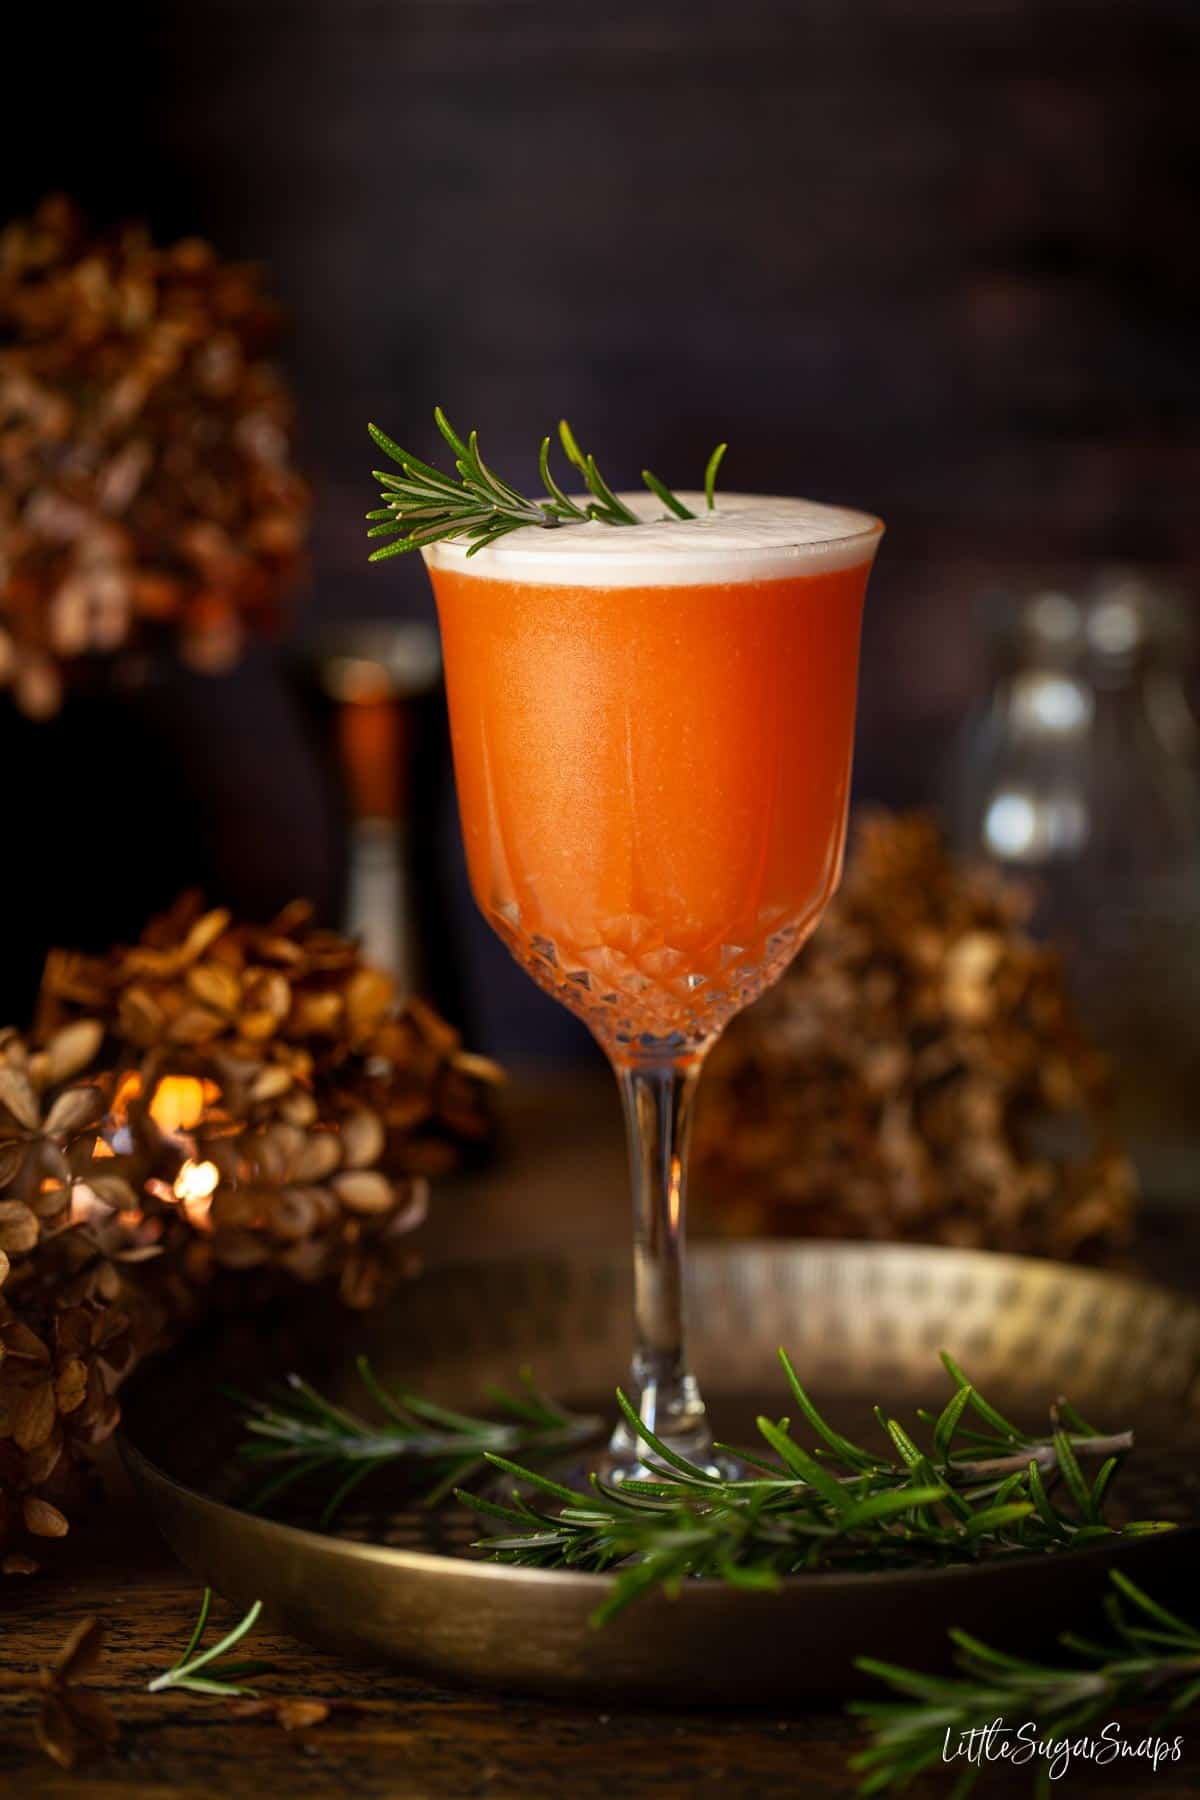 Straight on photo of Aperol sour gin cocktail with rosemary garnish